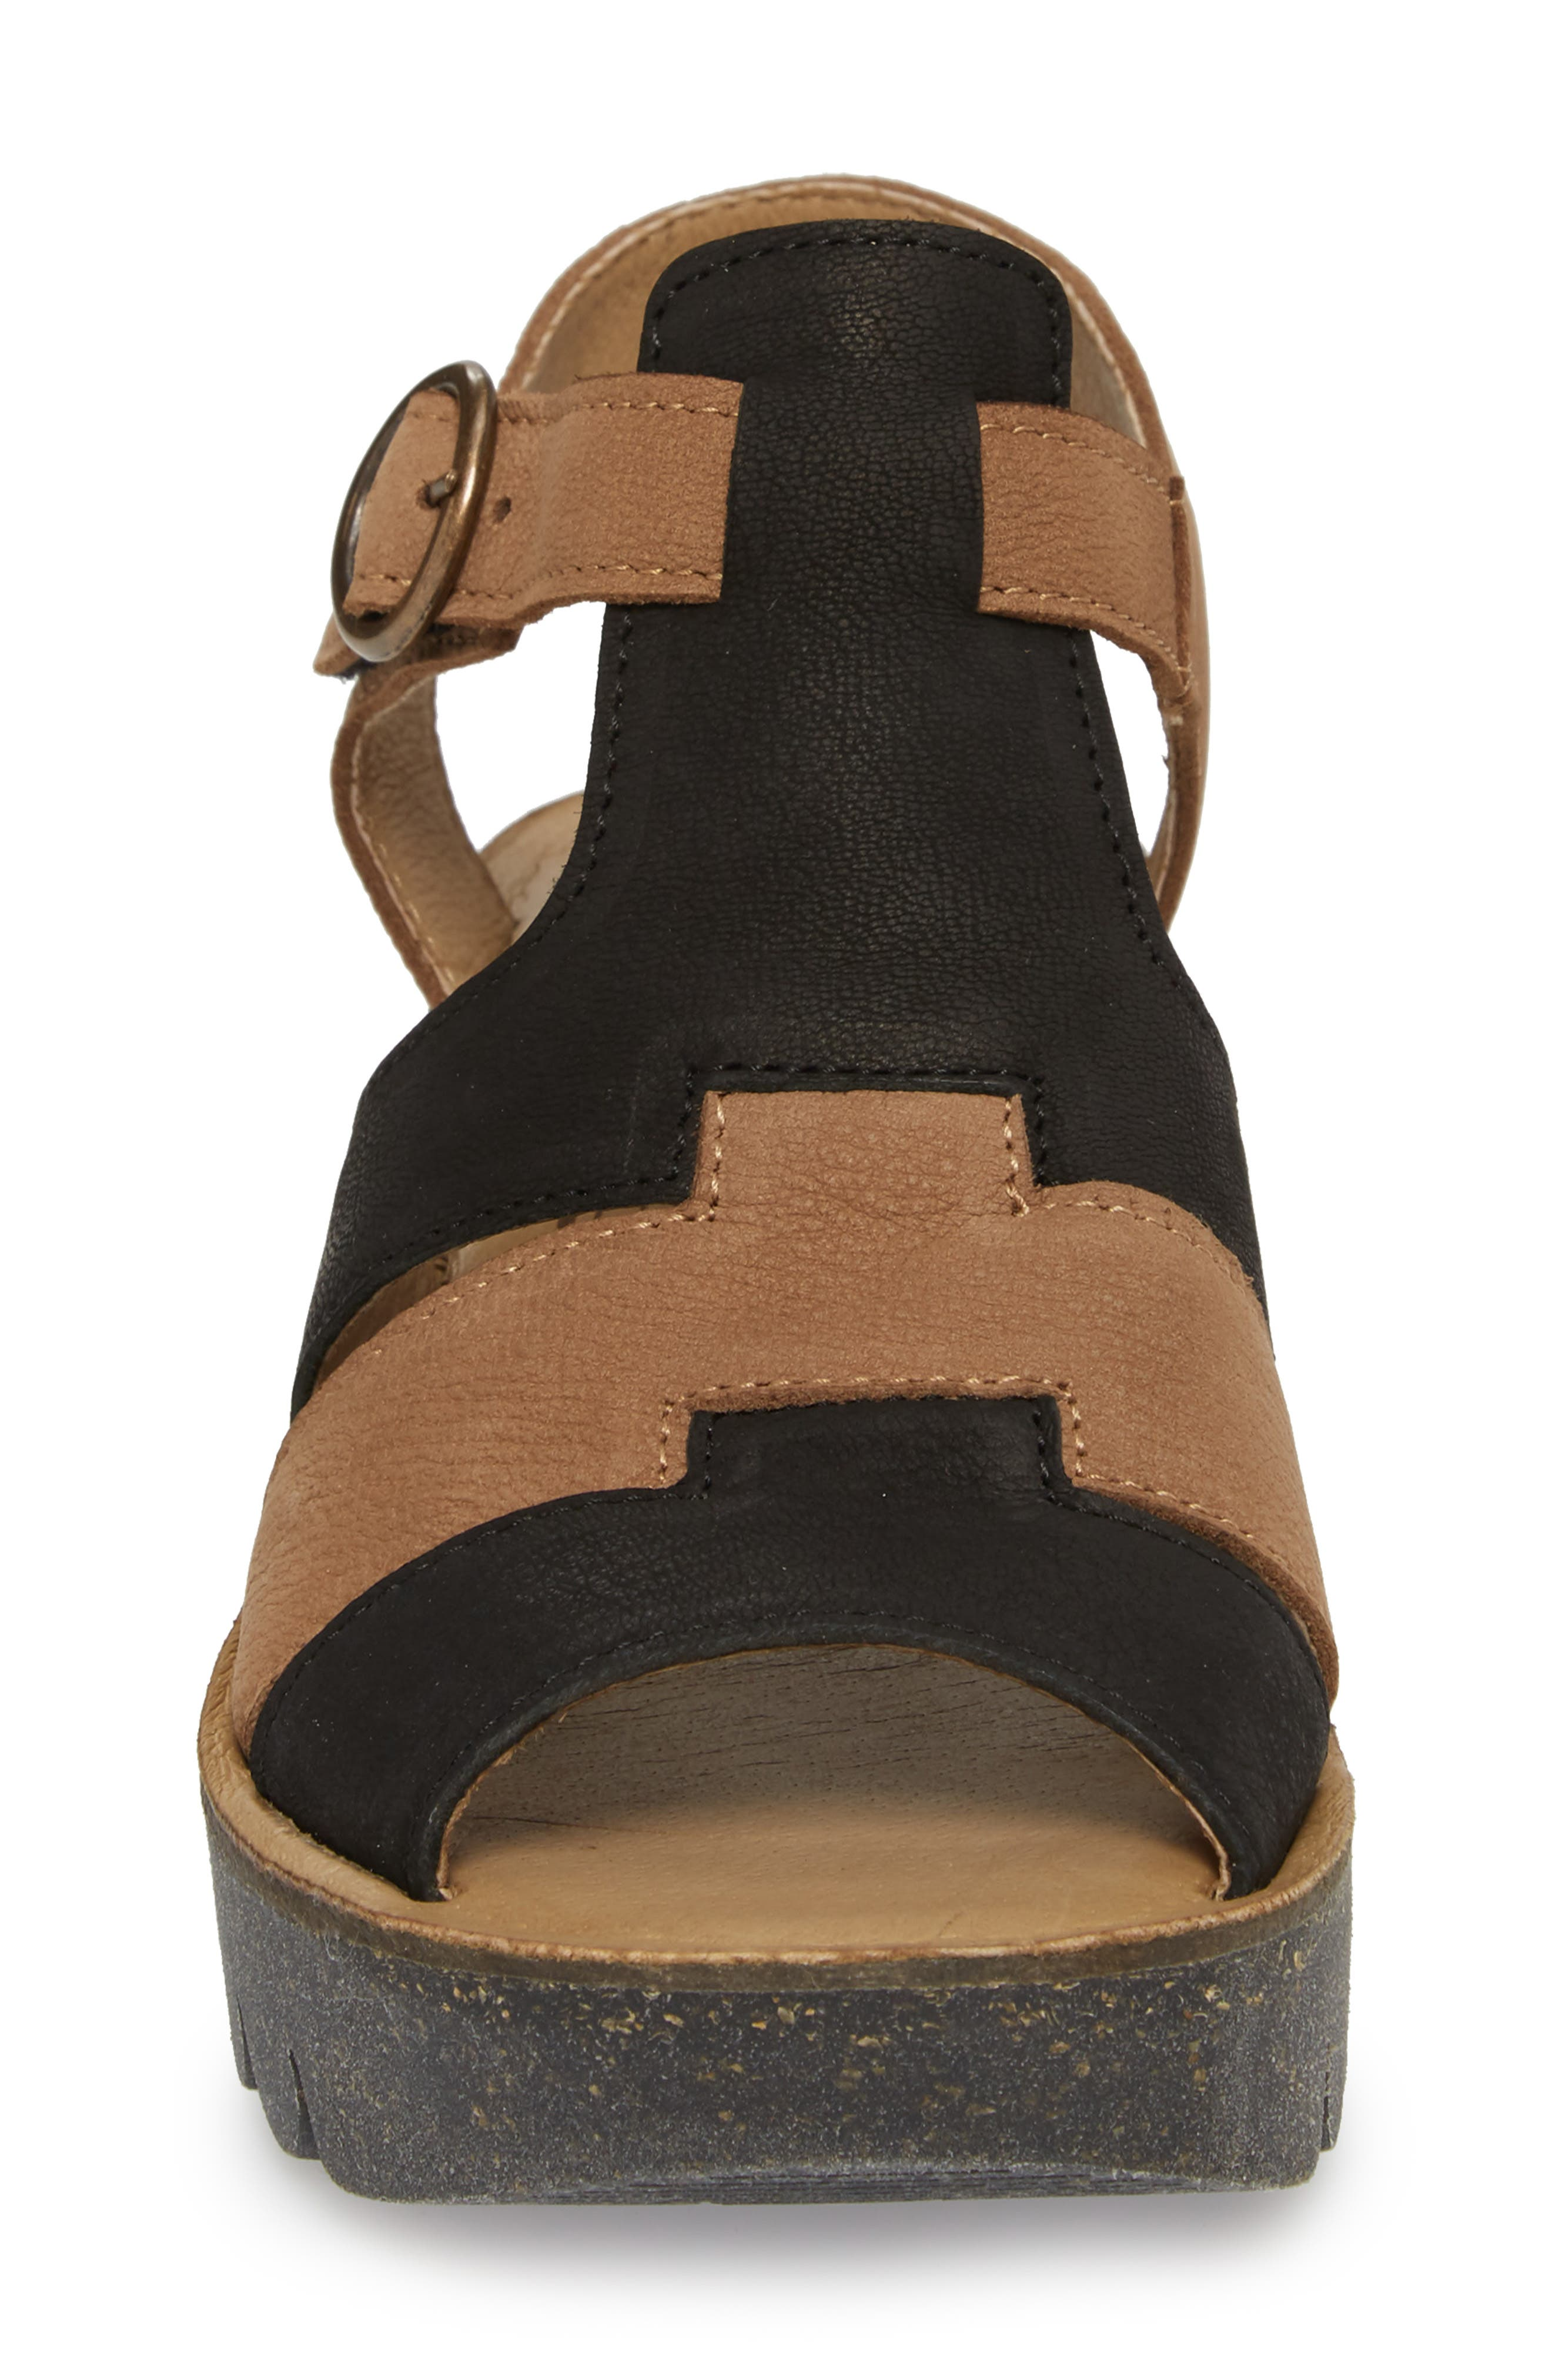 Yuni Wedge Sandal,                             Alternate thumbnail 4, color,                             Black/ Sand Cupido Leather